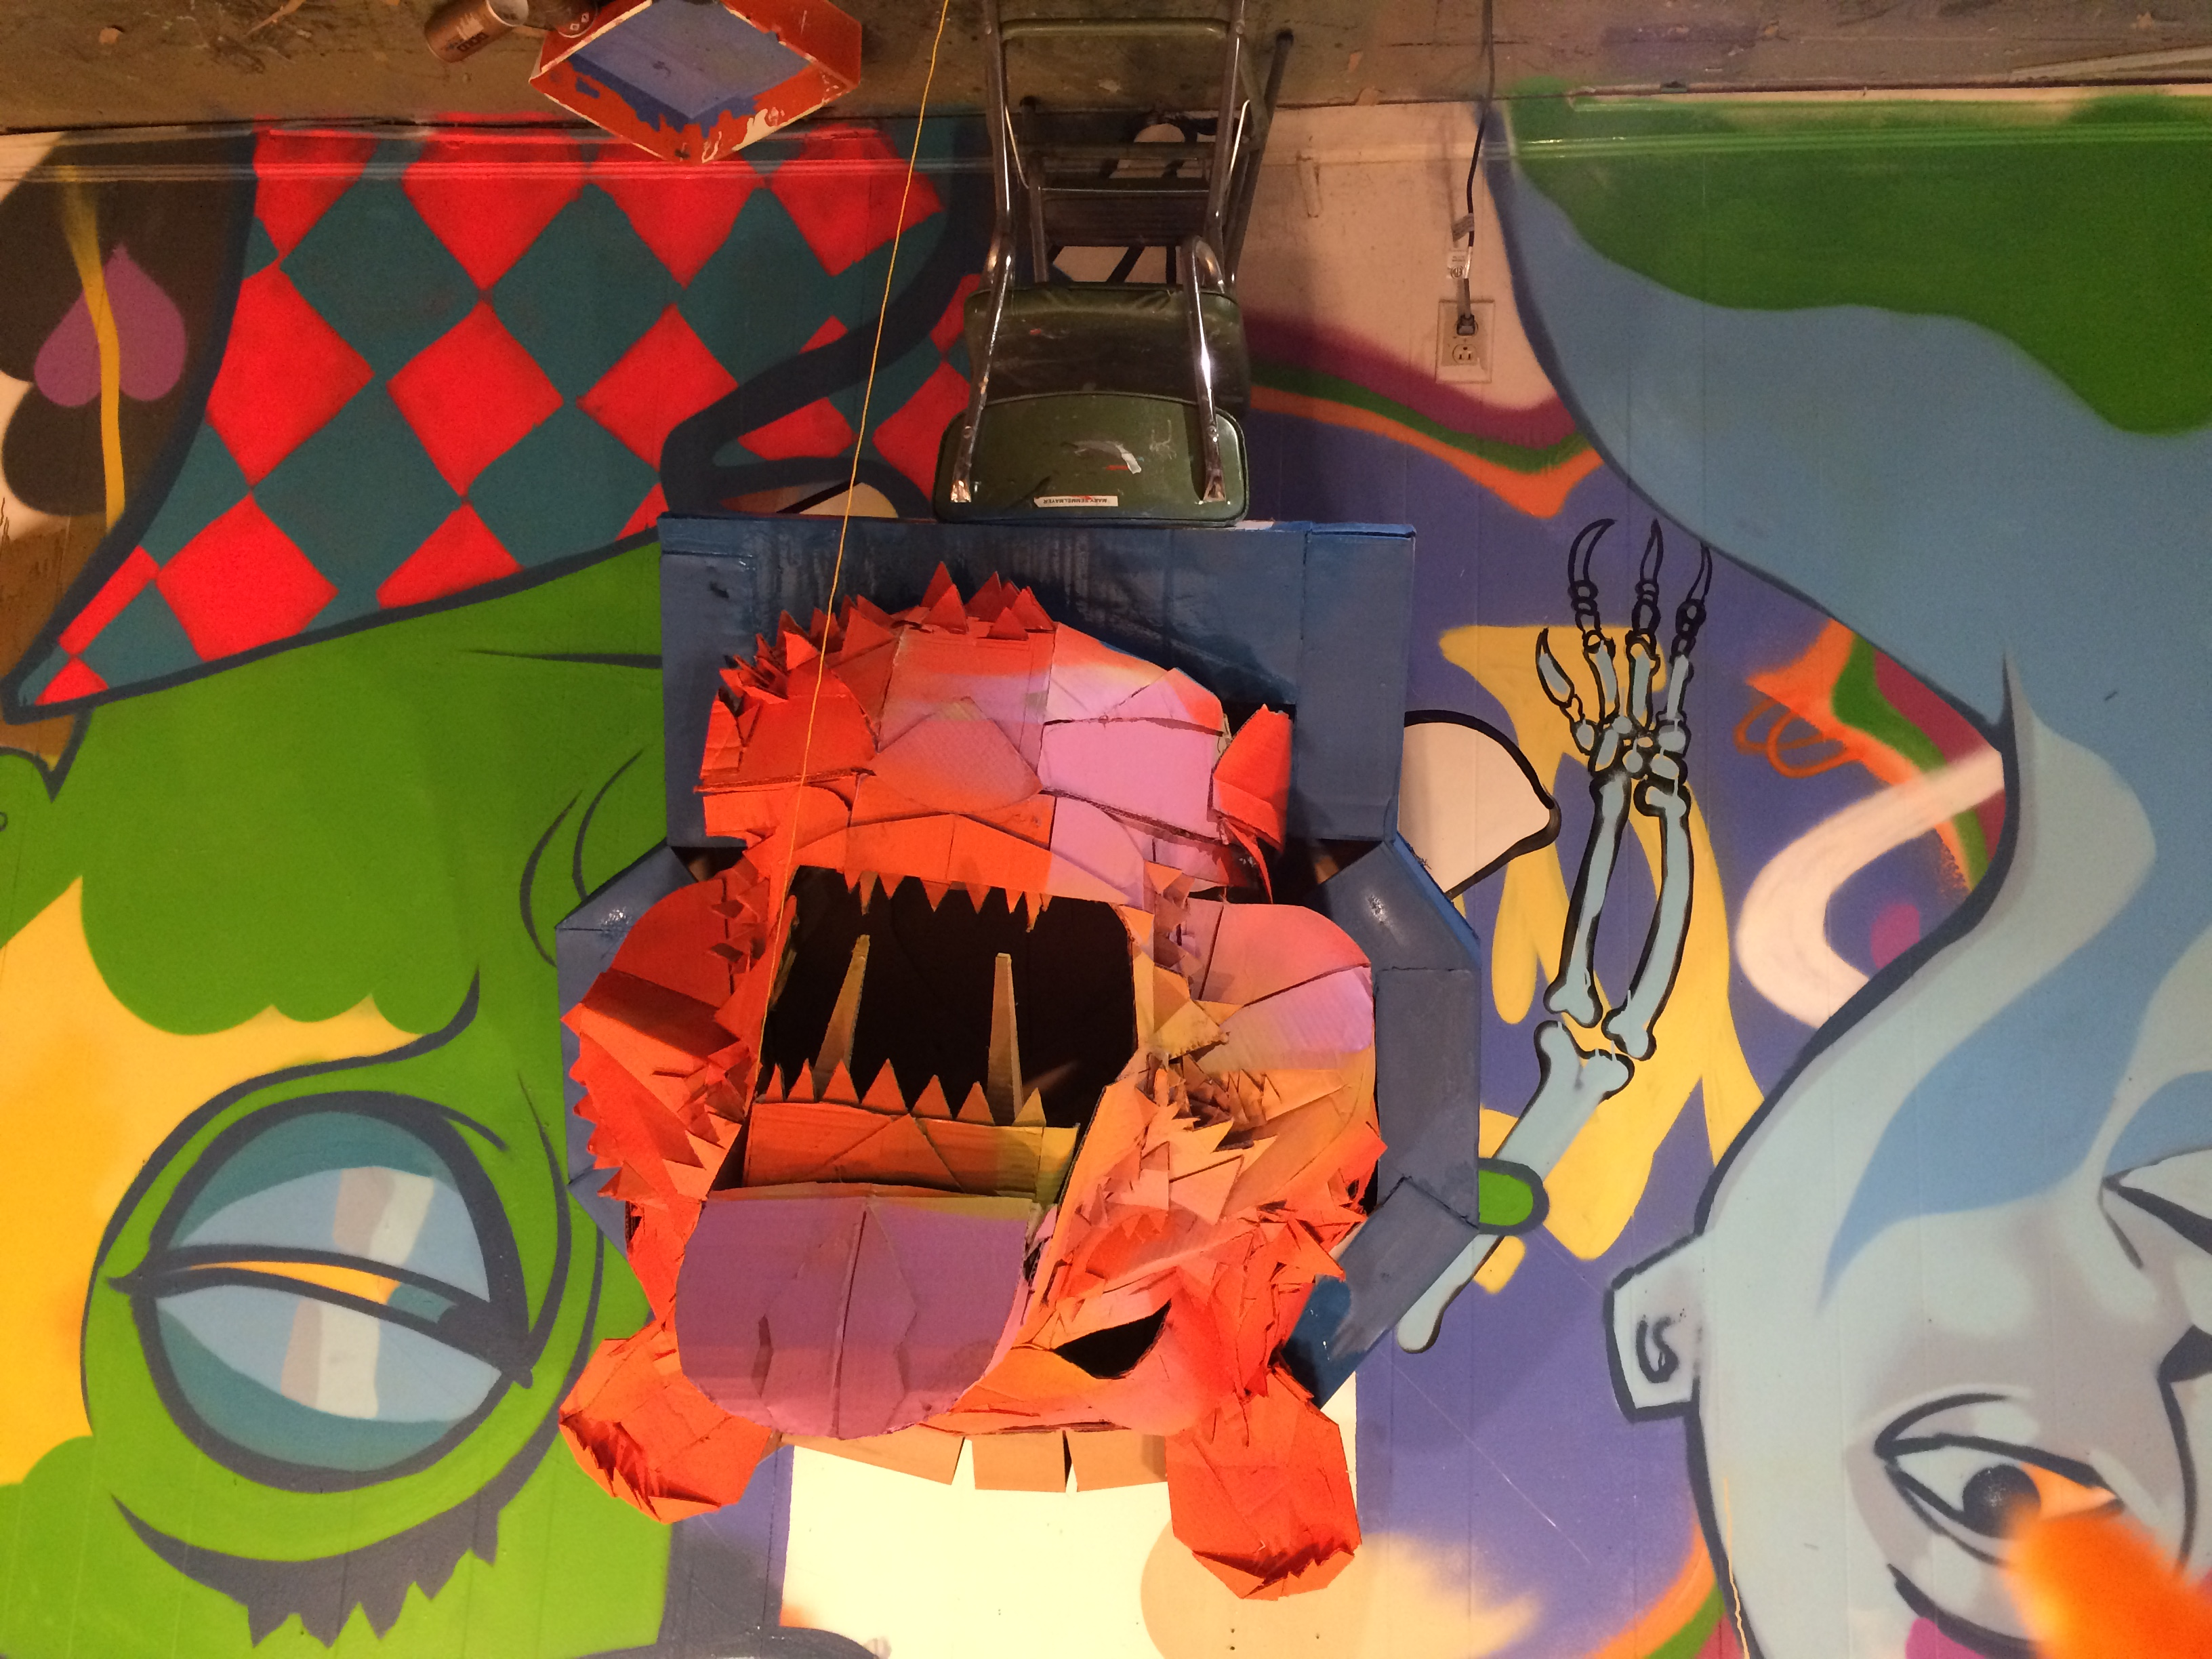 cardboard bear head on graffiti wall background